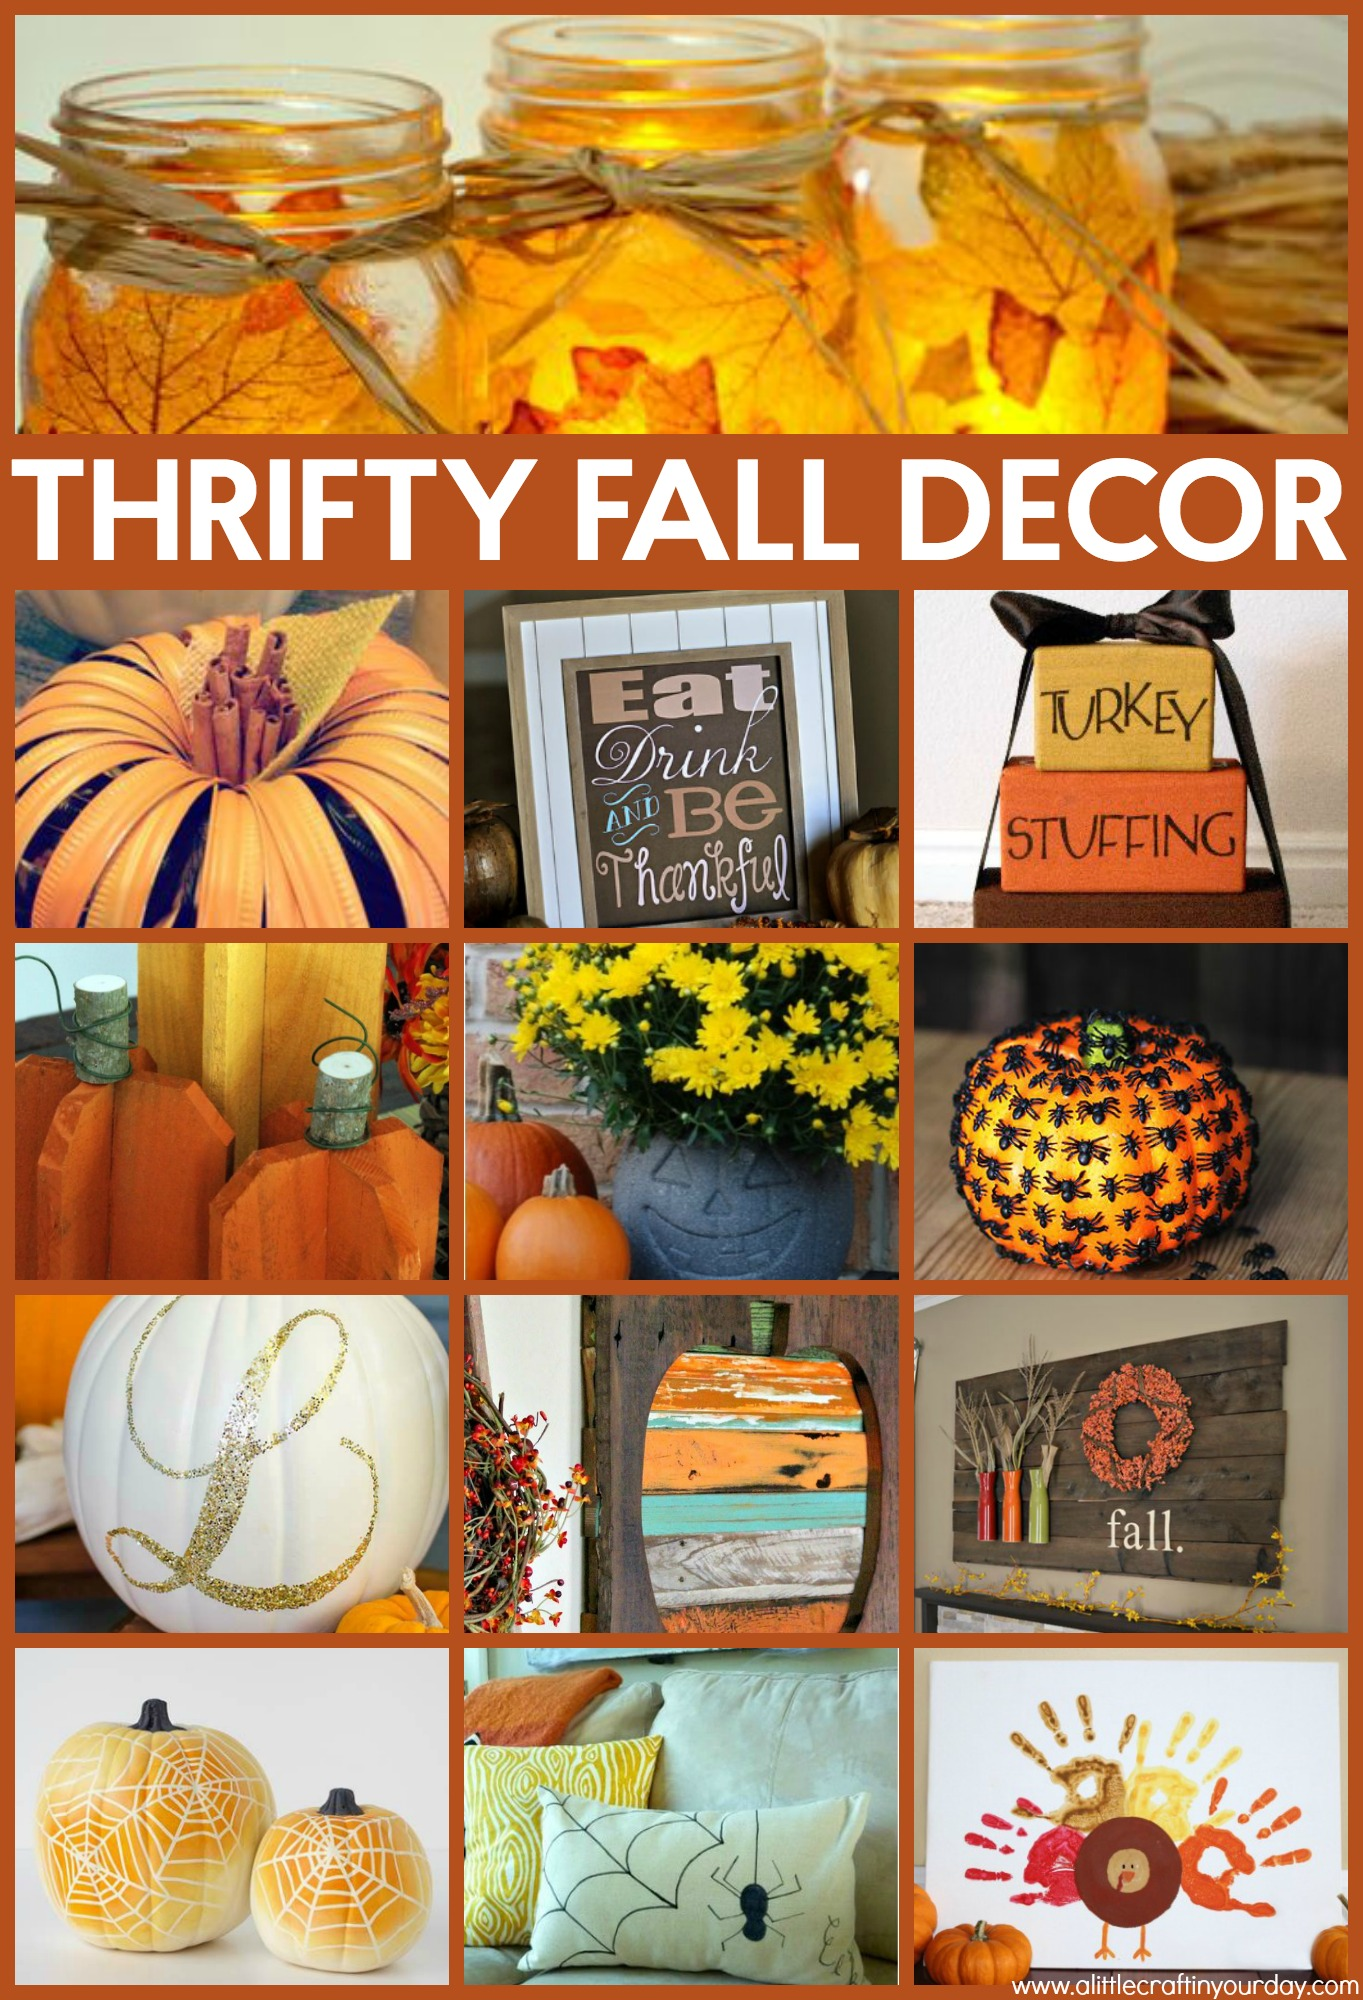 Thrifty fall decor ideas a little craft in your daya for Thrifty decor